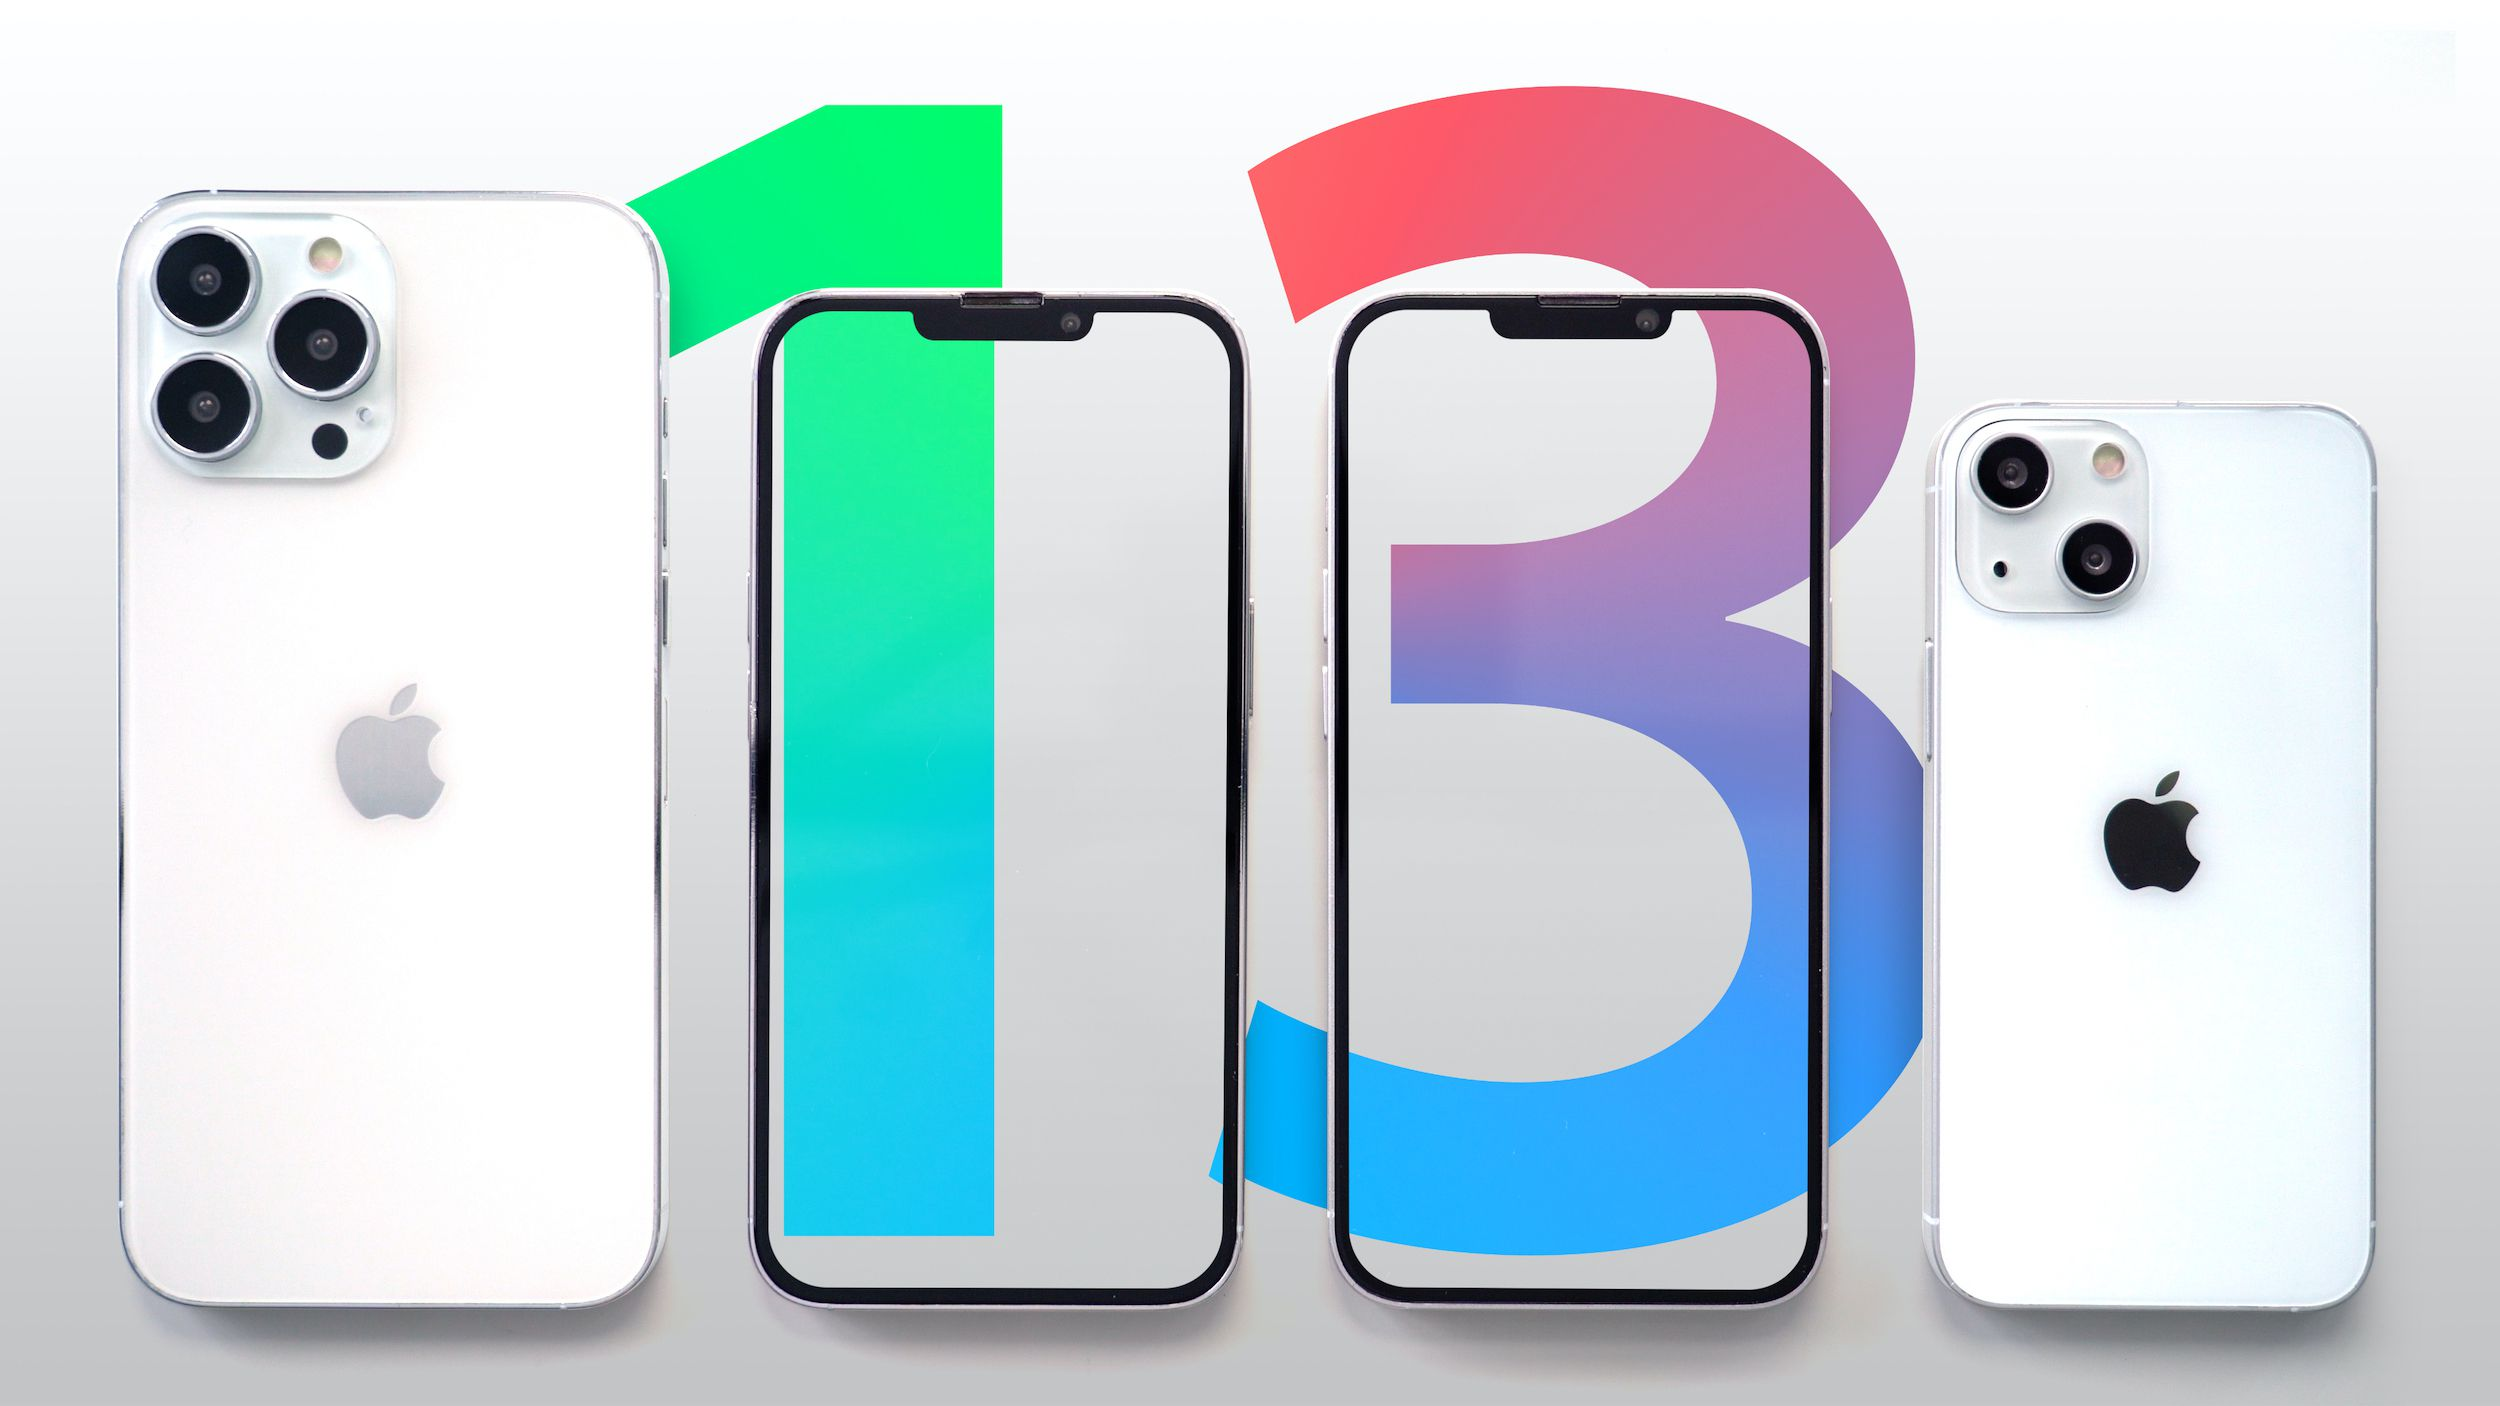 Rumor: No support for Touch ID on the iPhone 13